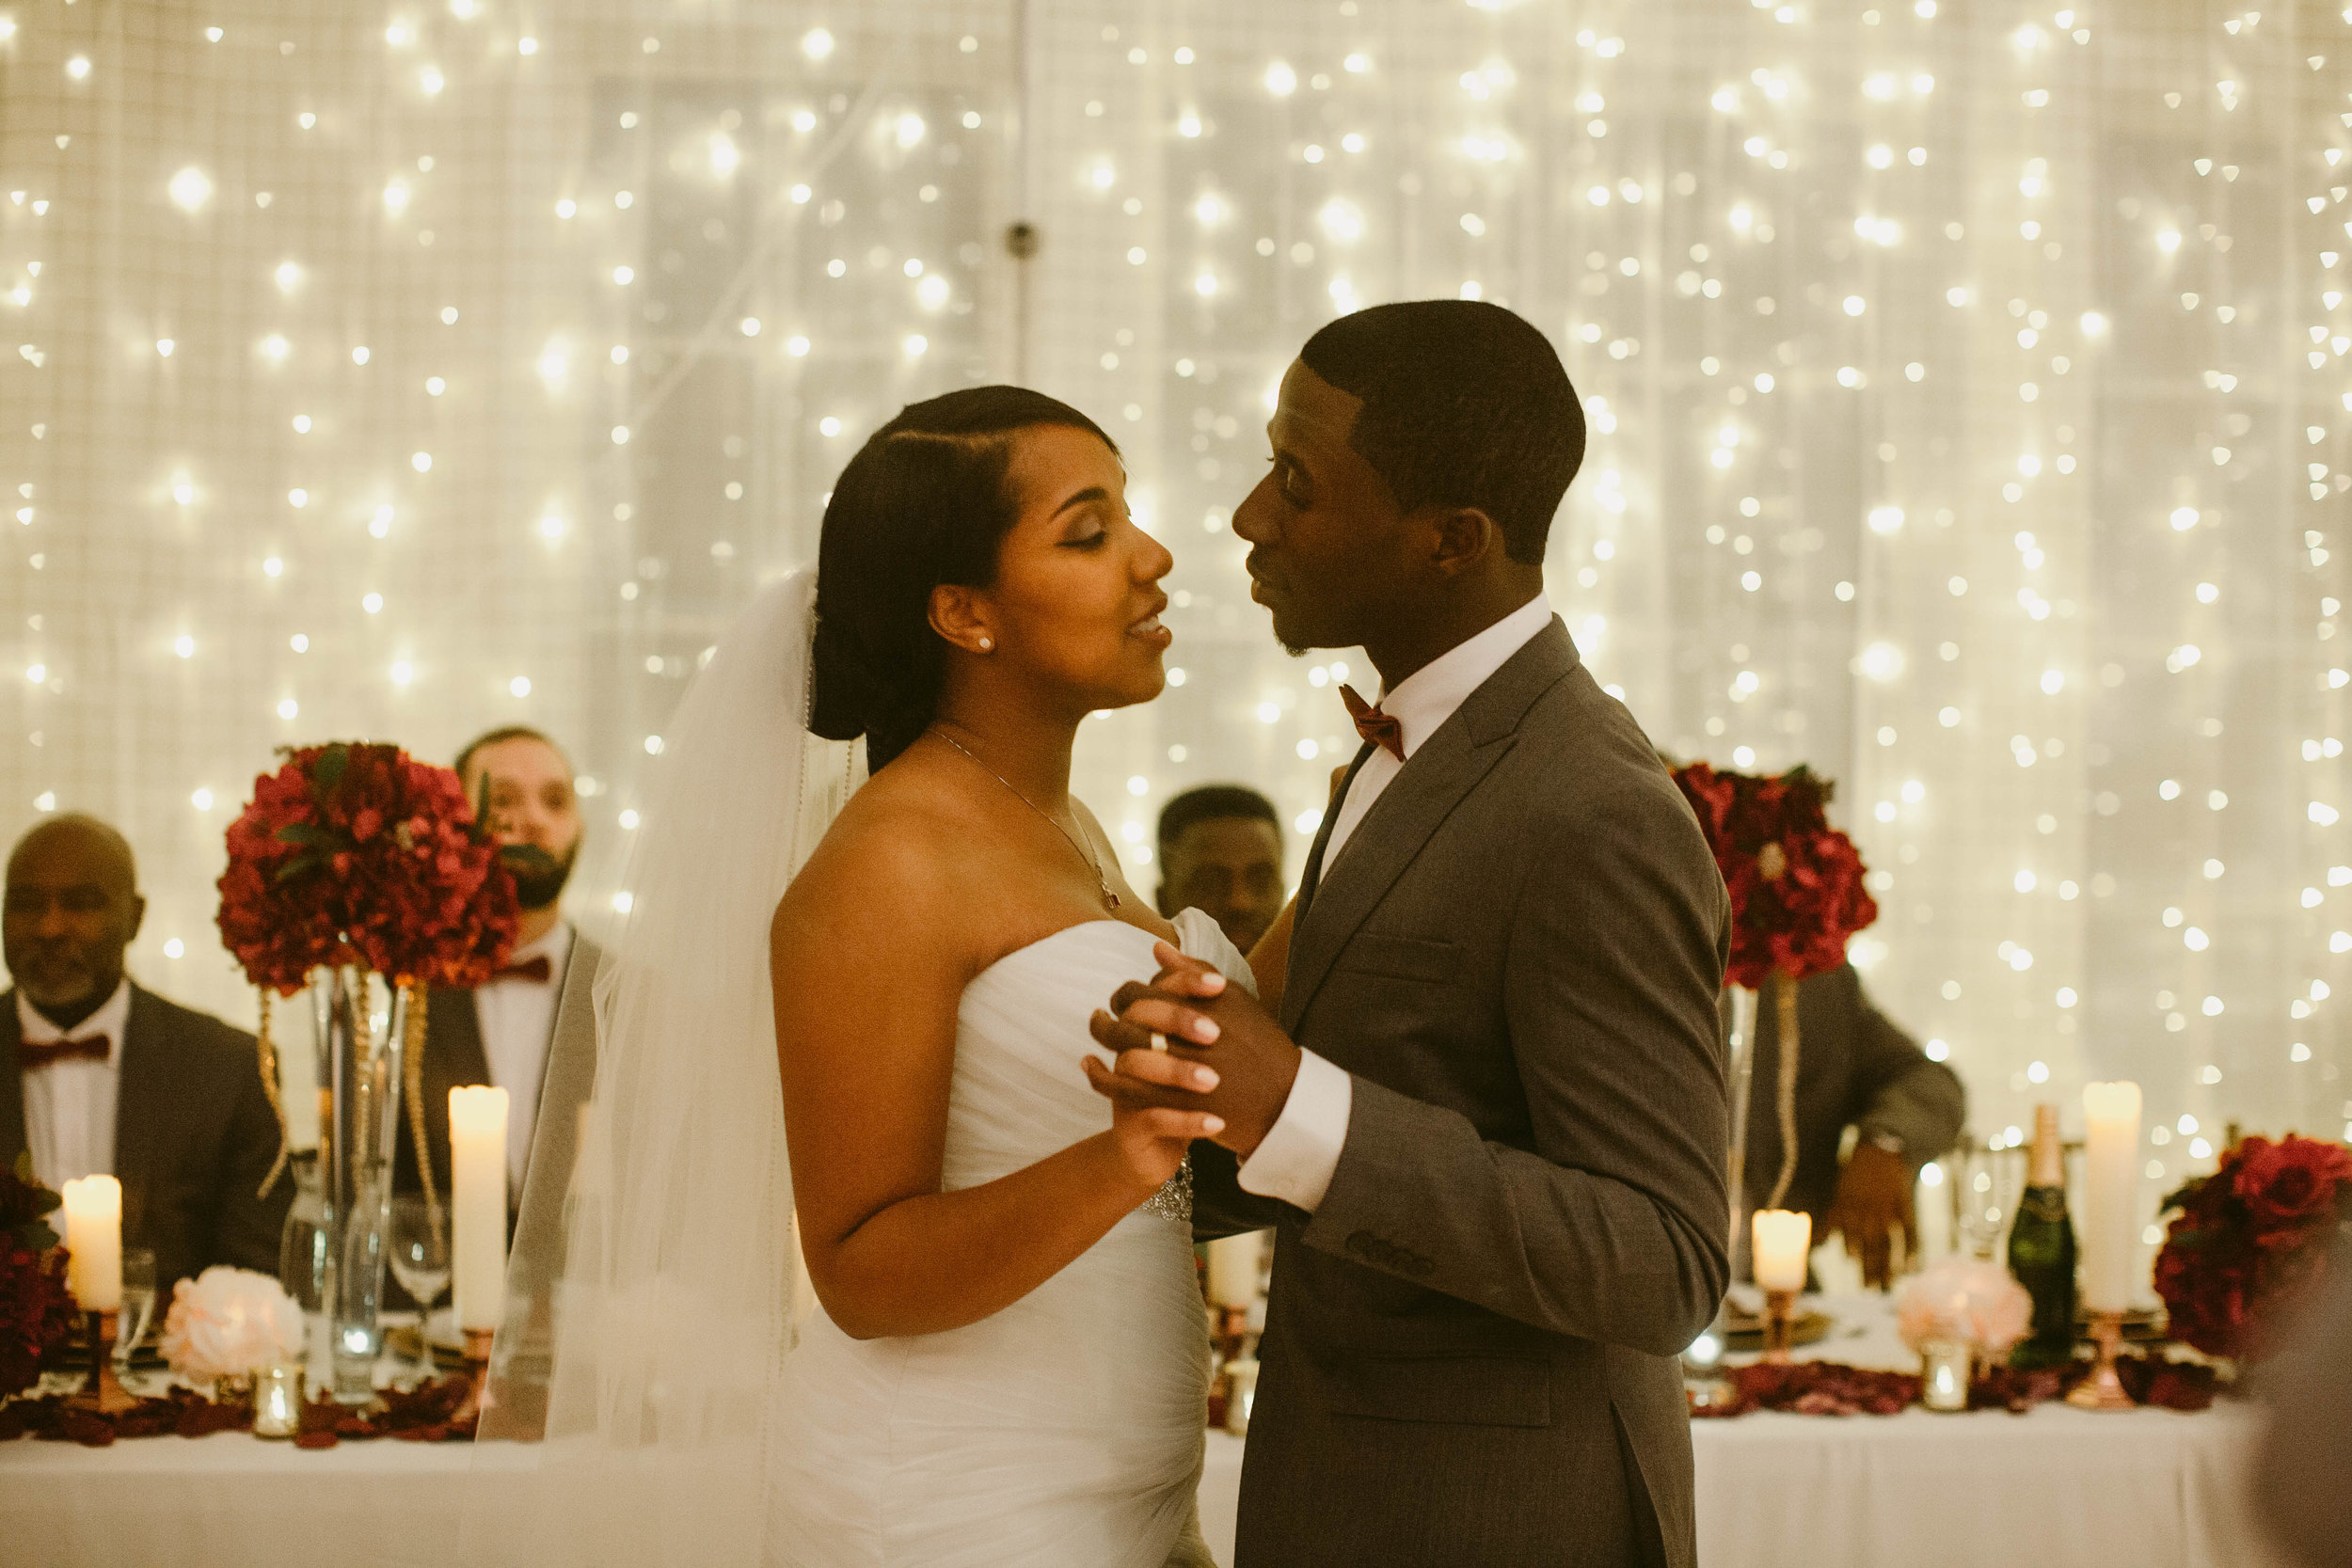 Joshua & Kiara Donald - When I hired Jennifer, I never would have expected the amount of dedication, attention to detail, the support, not only to me but to my family and wedding party, and her complete devotion to making my wedding day special. She was always poised, confident, diligent which not only saved me monetarily on numerous occasion but it helped put my family at ease. Now to the reception, it was everything I wanted and more. It was a dream! My husband and I couldn't believe how she was able to transform an empty hall into a romantic space. That night, I danced to twinkling lights in what can only be described as every little girl's dream. I never had a concrete vision of what I wanted but Jennifer took my ideas and made it a reality. As I look back on those pictures, I am in awe because there was no small effort made to create that day and make it what it was. Jennifer is incredible in what she does.